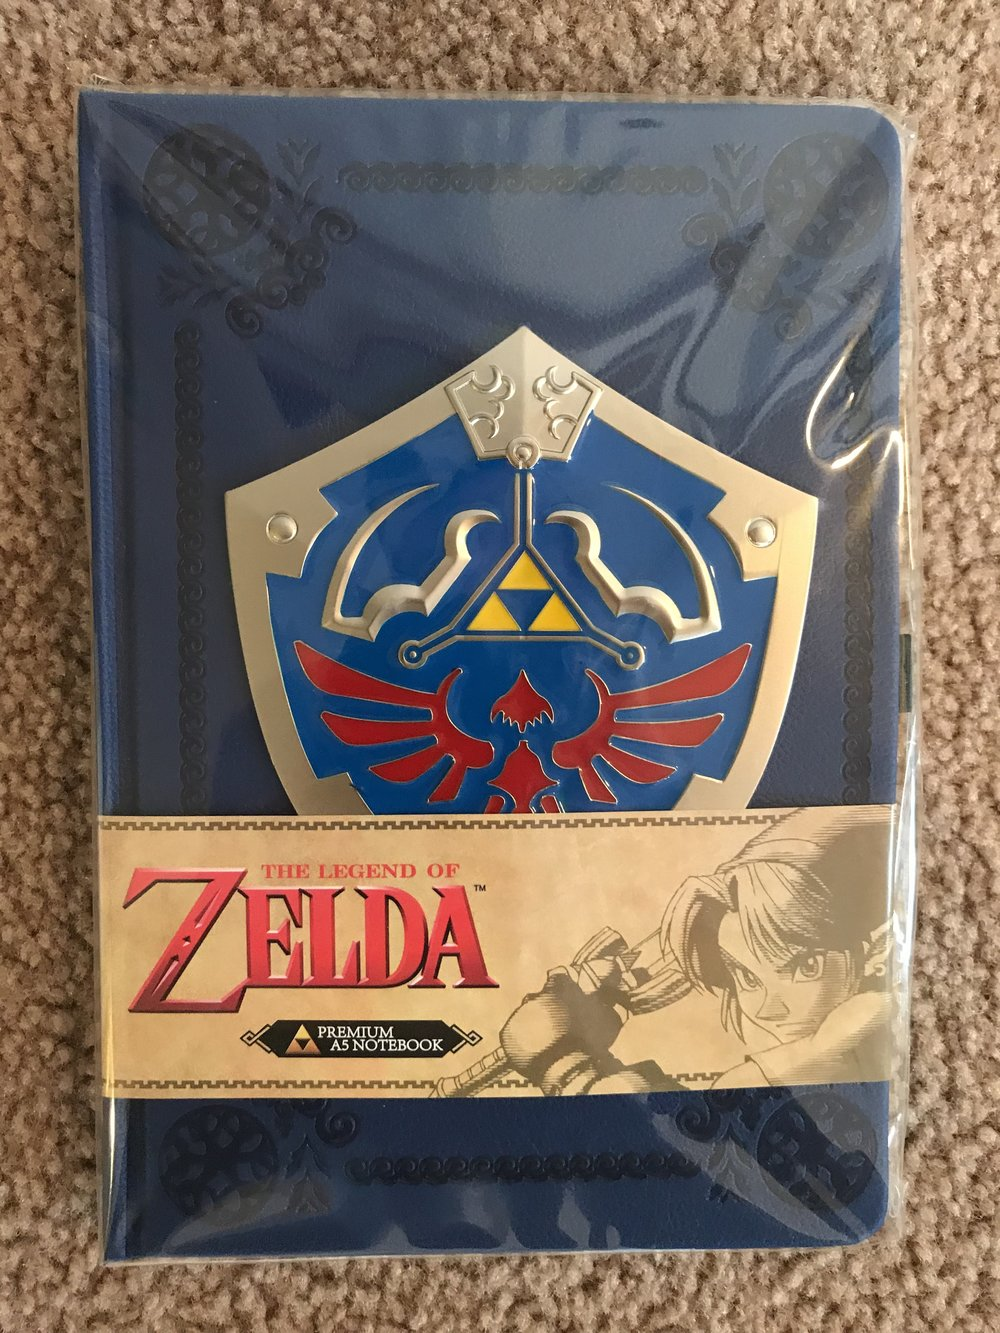 Hylian Shield on the cover of the notebook